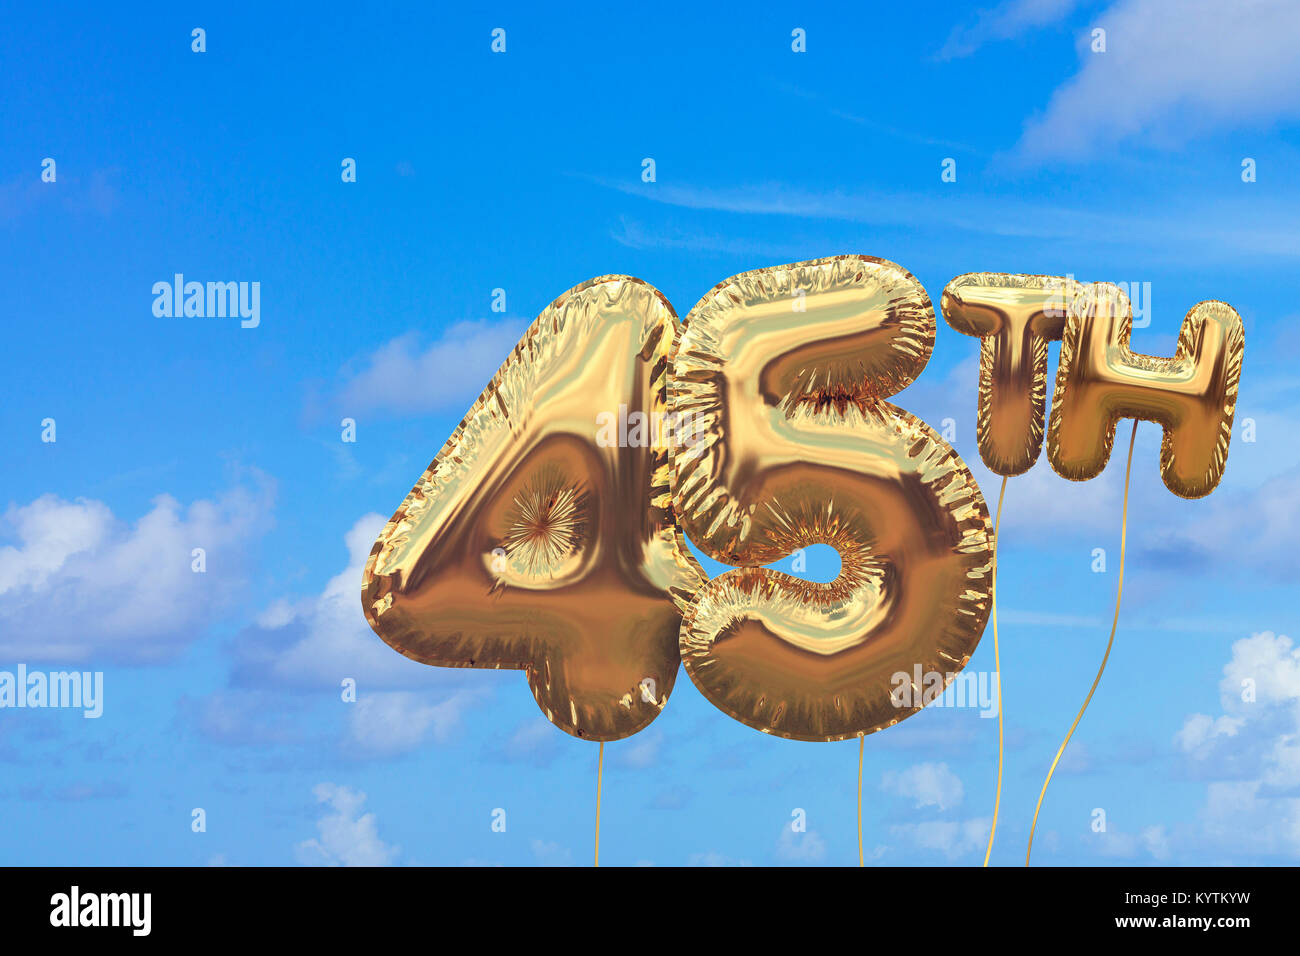 Gold Number 45 Foil Birthday Balloon Against A Bright Blue Summer Sky Golden Party Celebration 3D Rendering